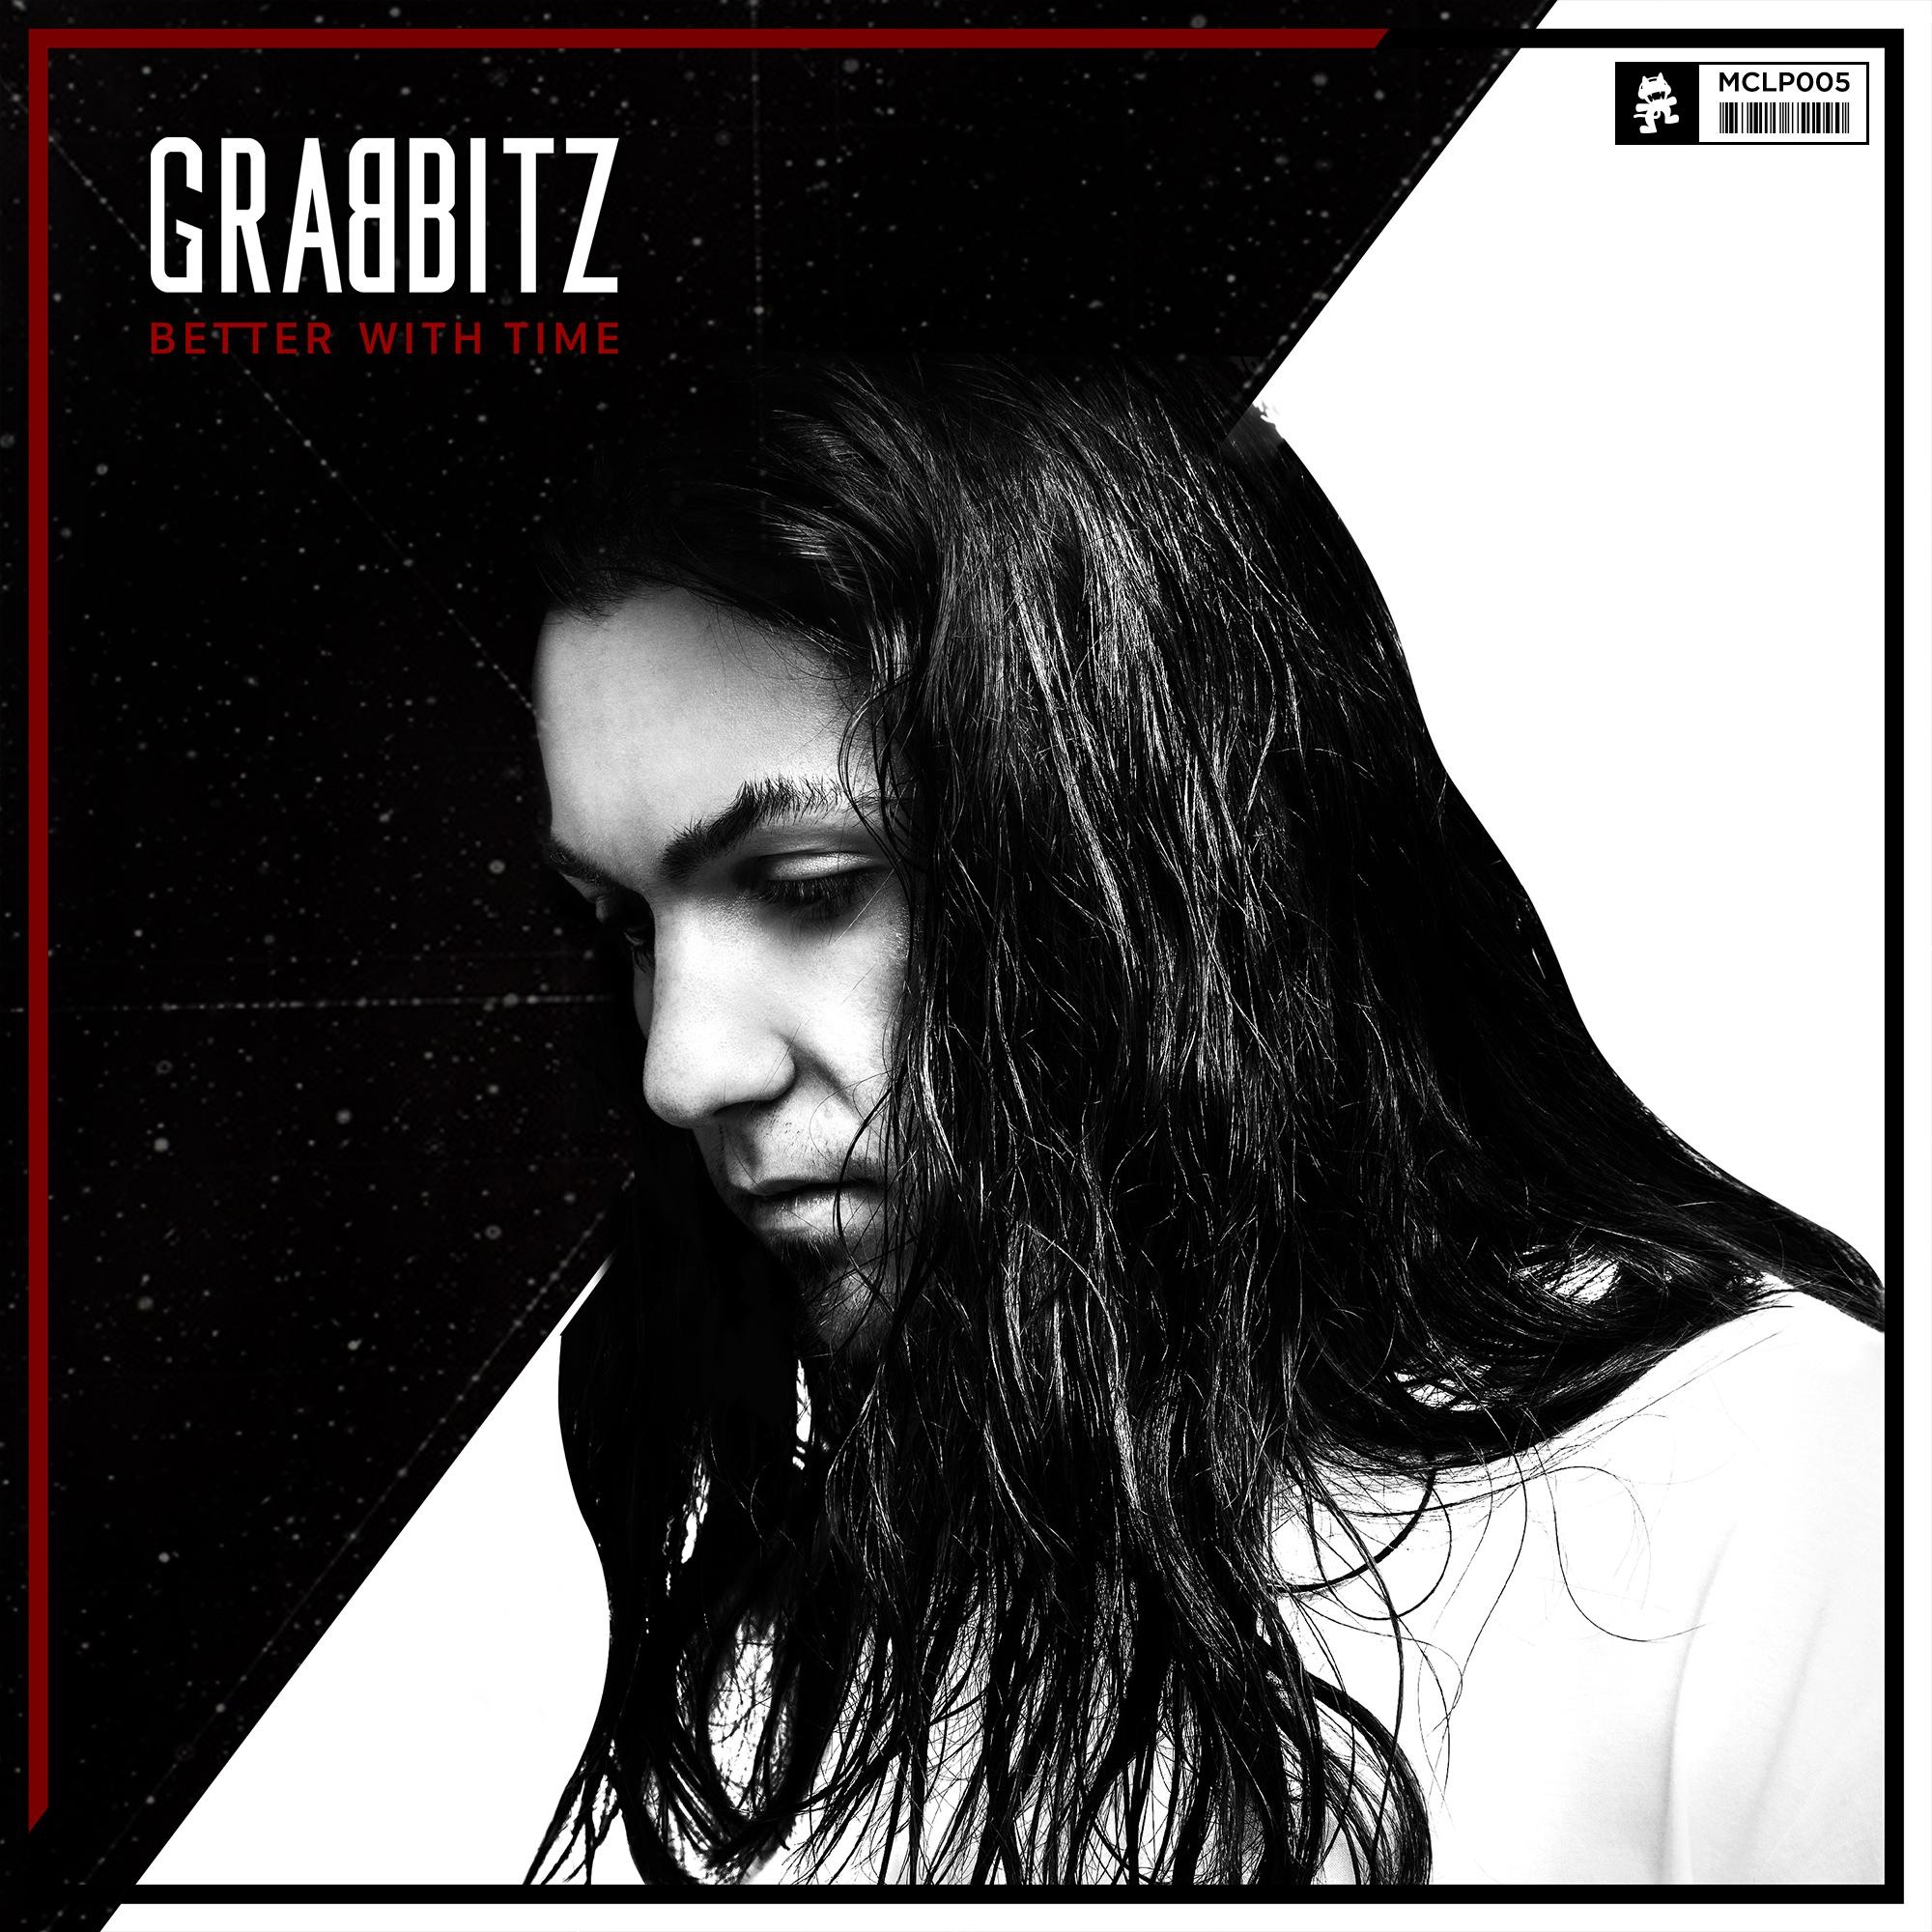 Download Song Better Now: Better With Time By Grabbitz On ITunes